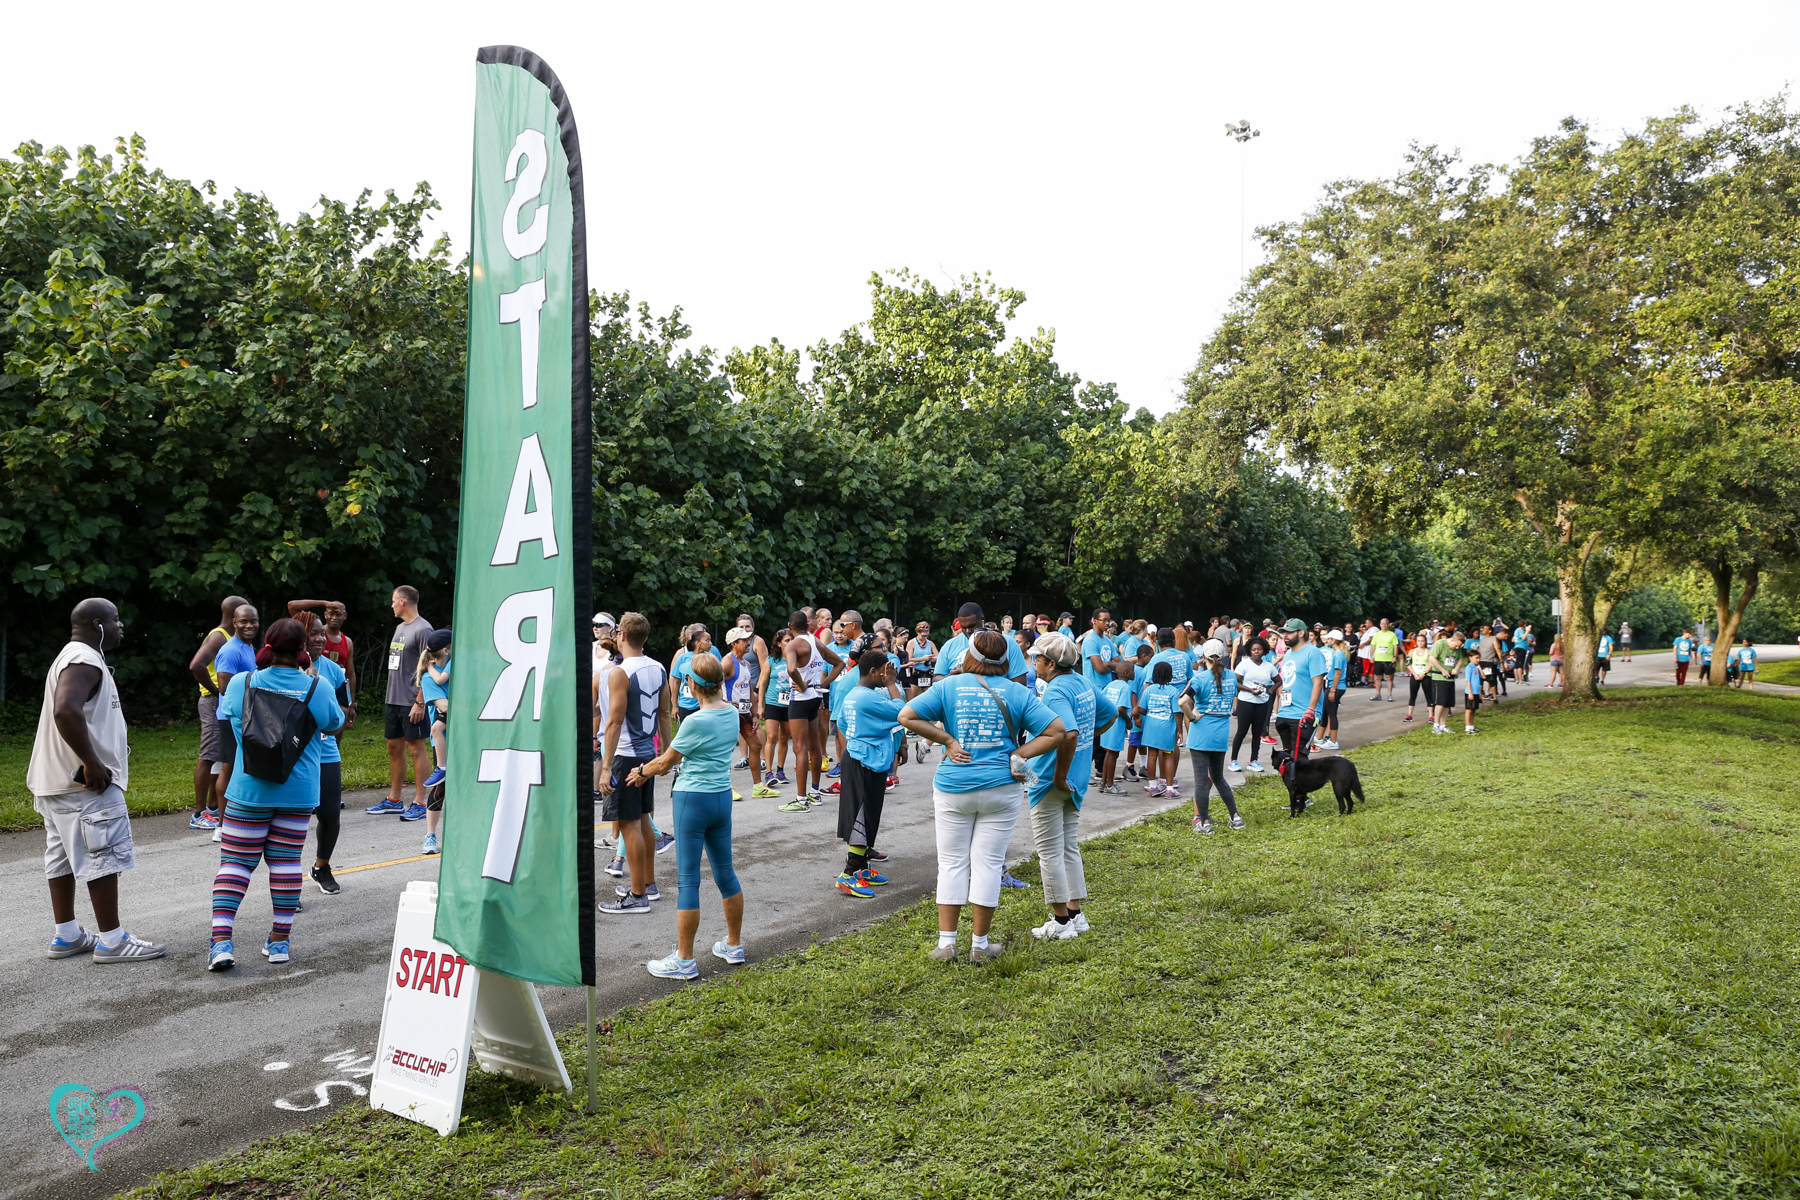 KF 0195 - Florida Teal 5K Run/ Fun Walk 2016